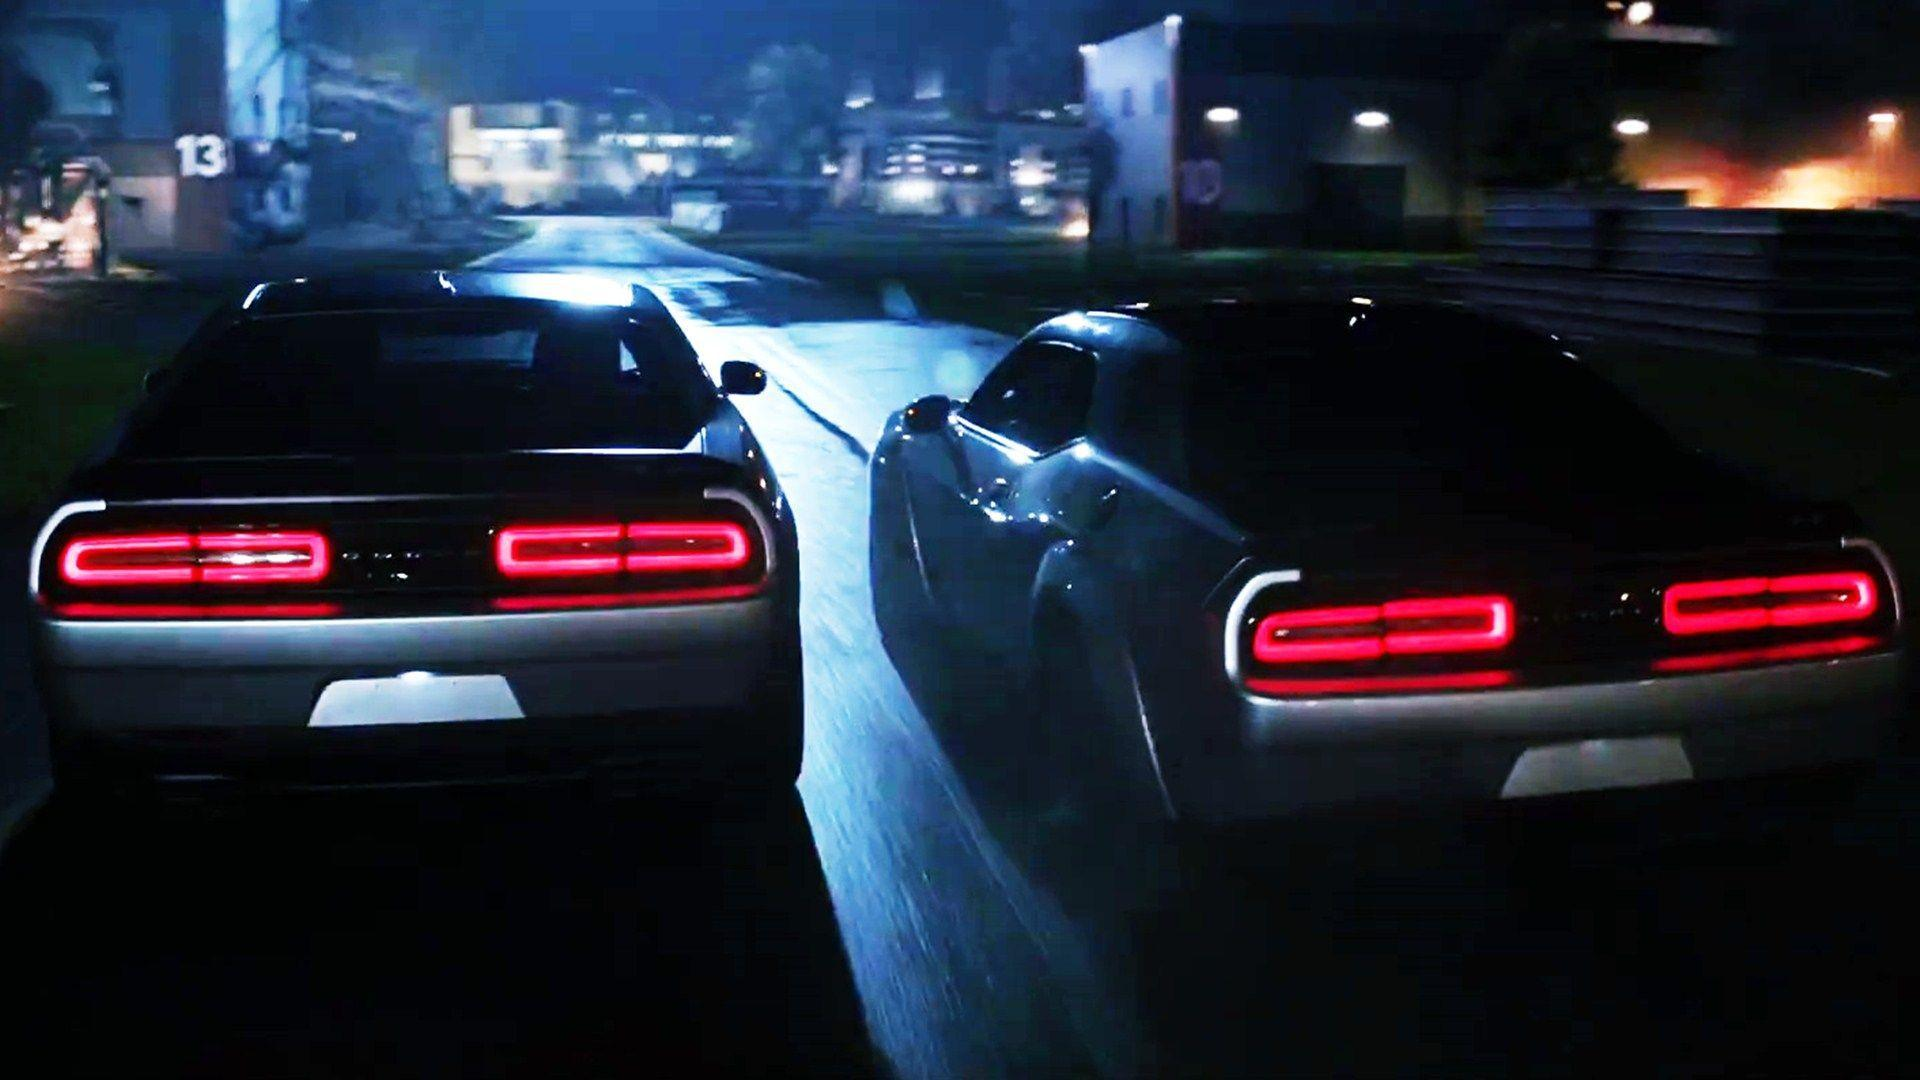 Fast and Furious 8 Wallpapers - BackgroundHDWallpapers